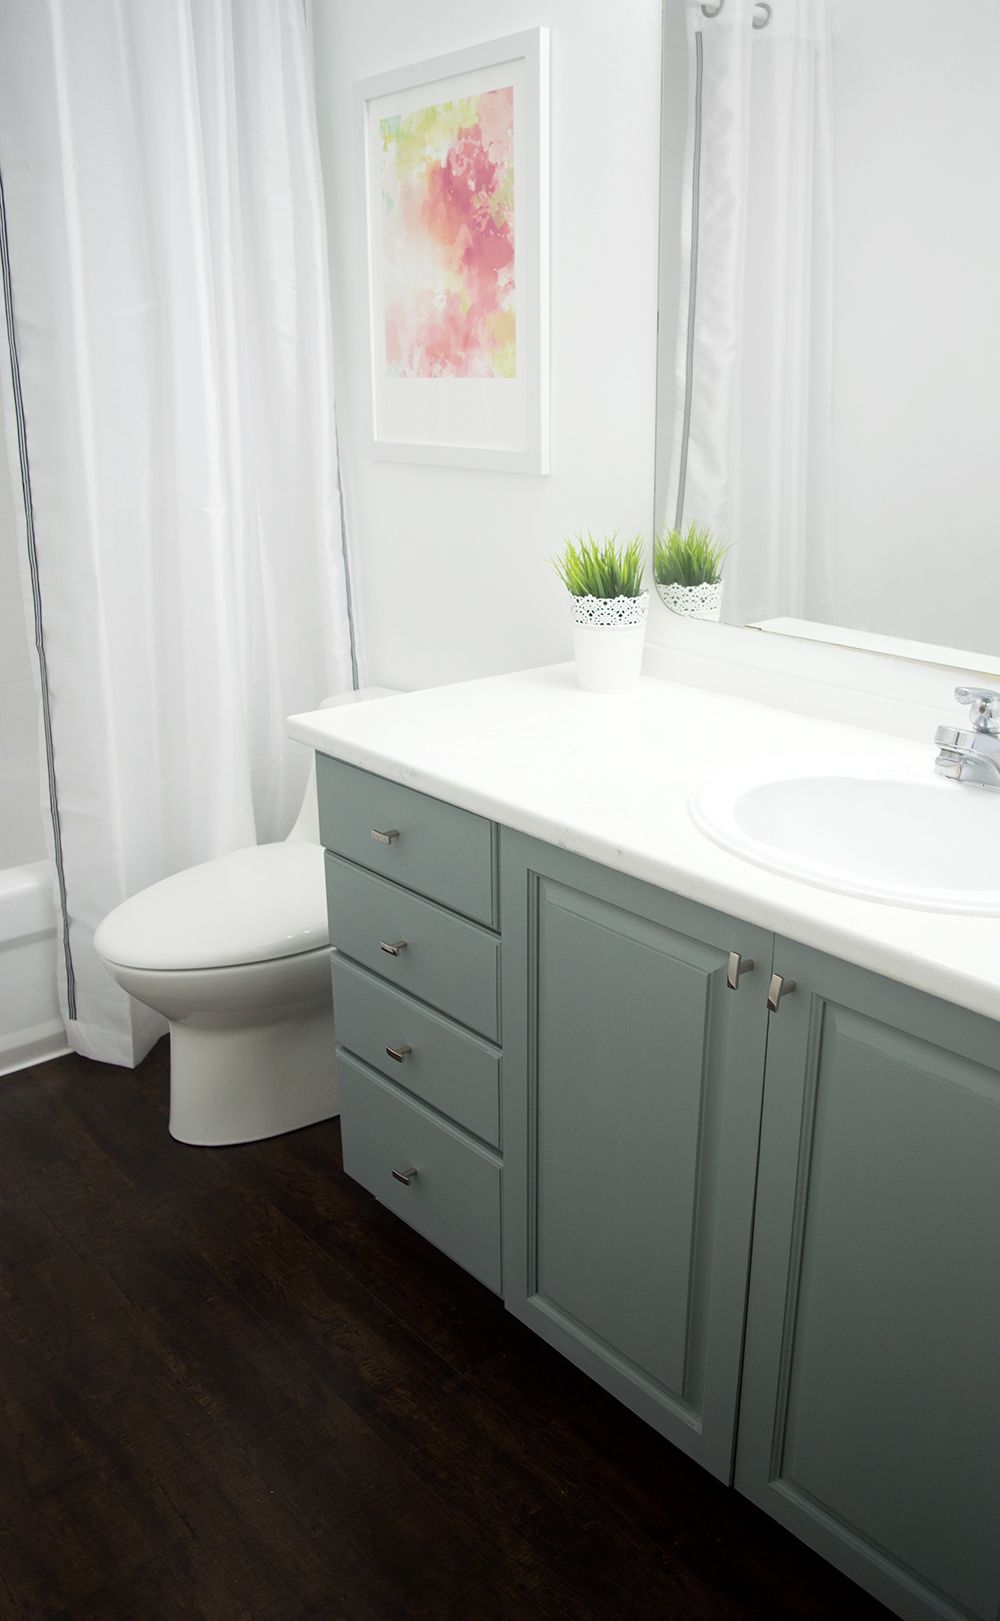 How To Paint Bathroom Cabinets | Pinterest | Rust, Painted bathroom ...